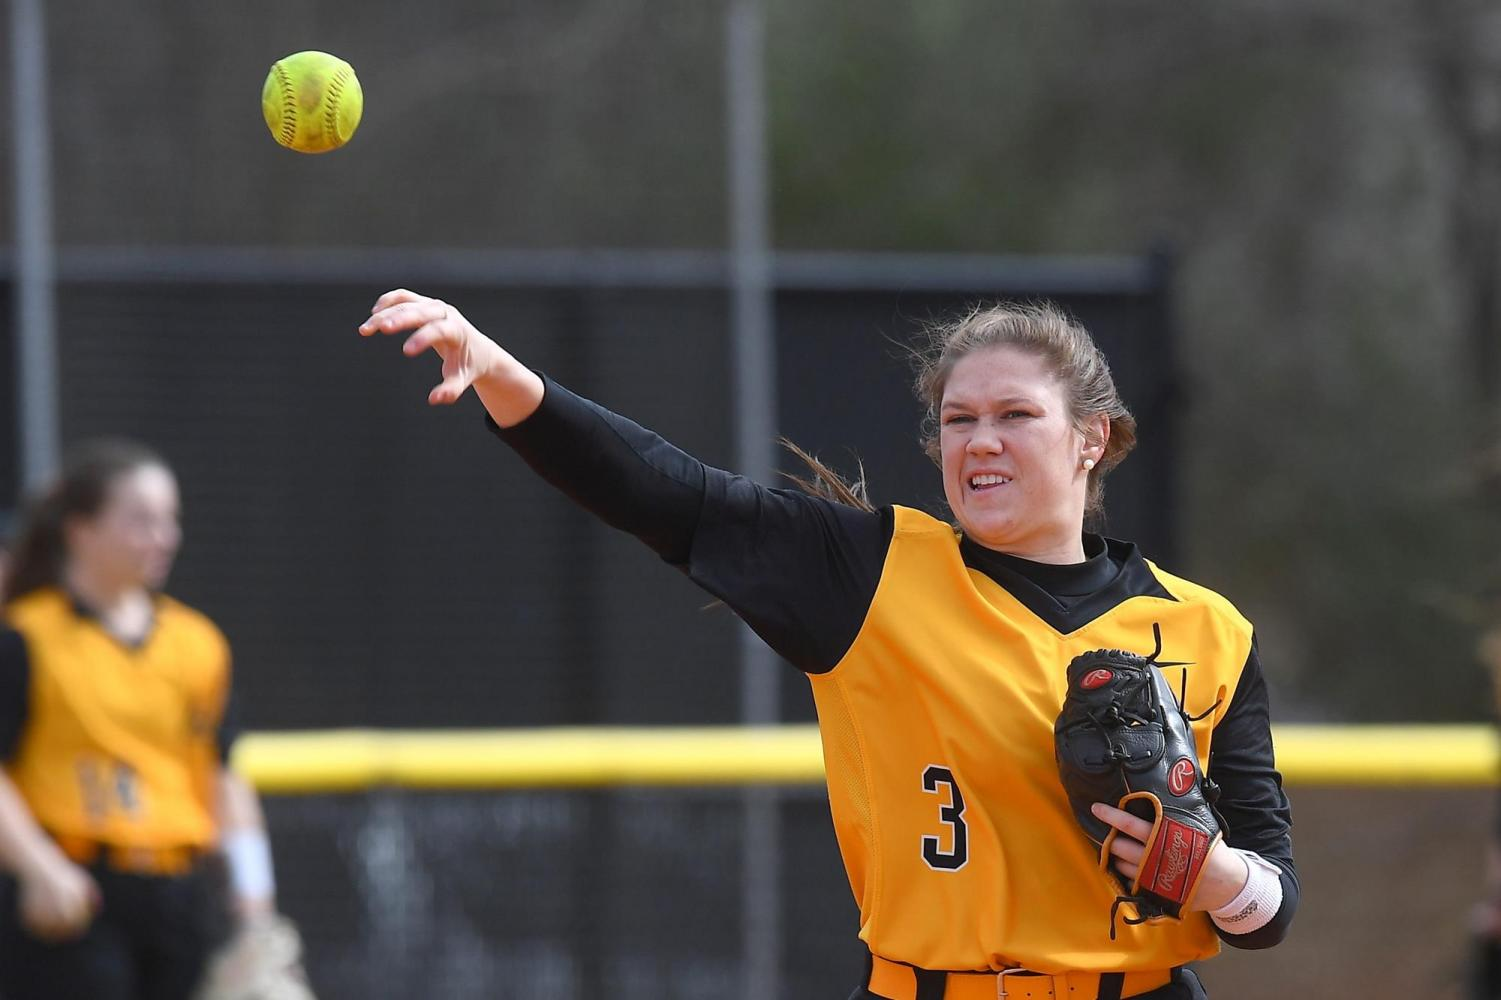 Senior third baseman Keri White makes a play during a game last season. White led the Mountaineers in seven statistical categories and was named to the all-Sun Belt second team a season ago.